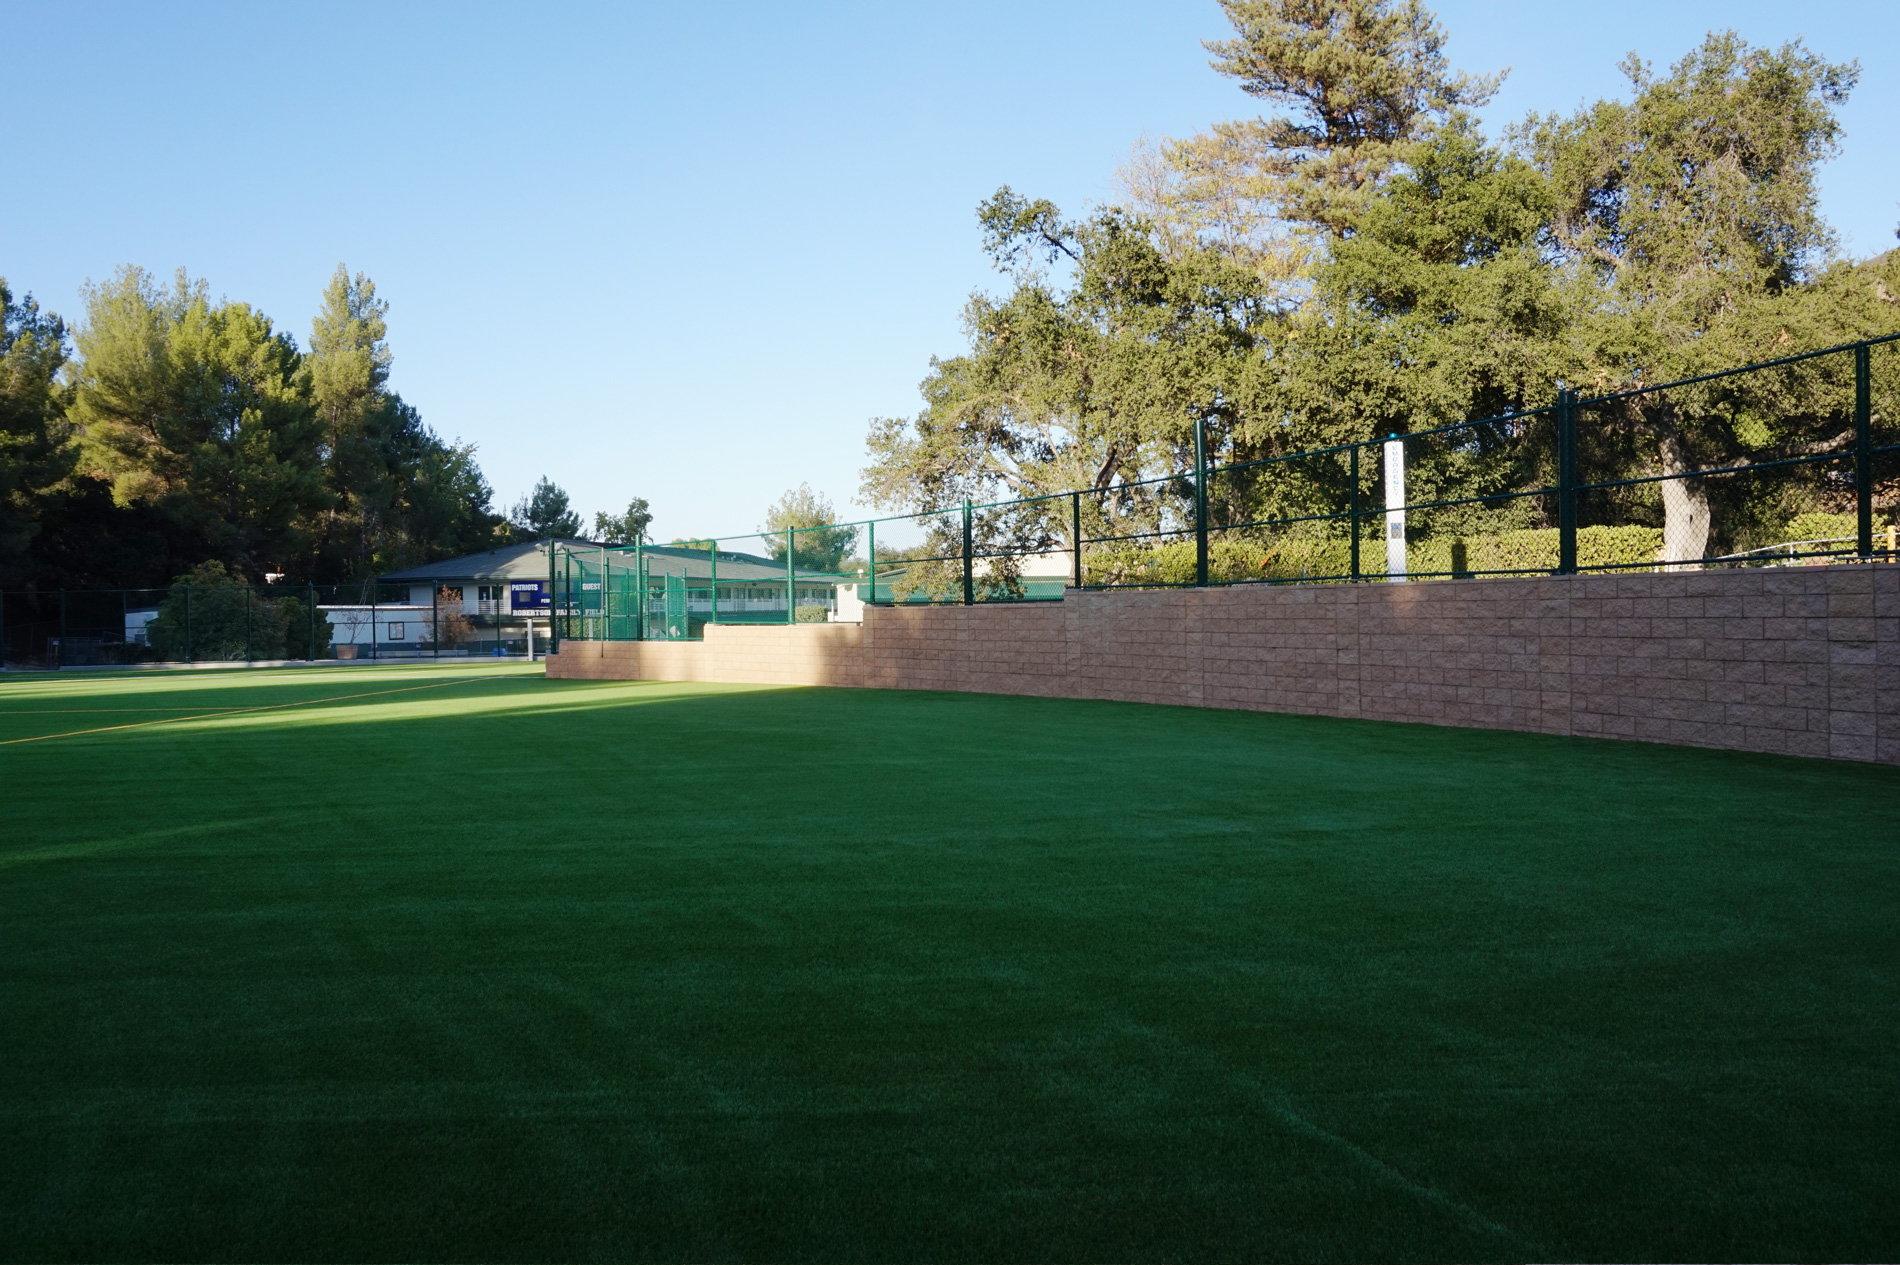 CPF Masonry Outfield Brick Wall Viewpoint School